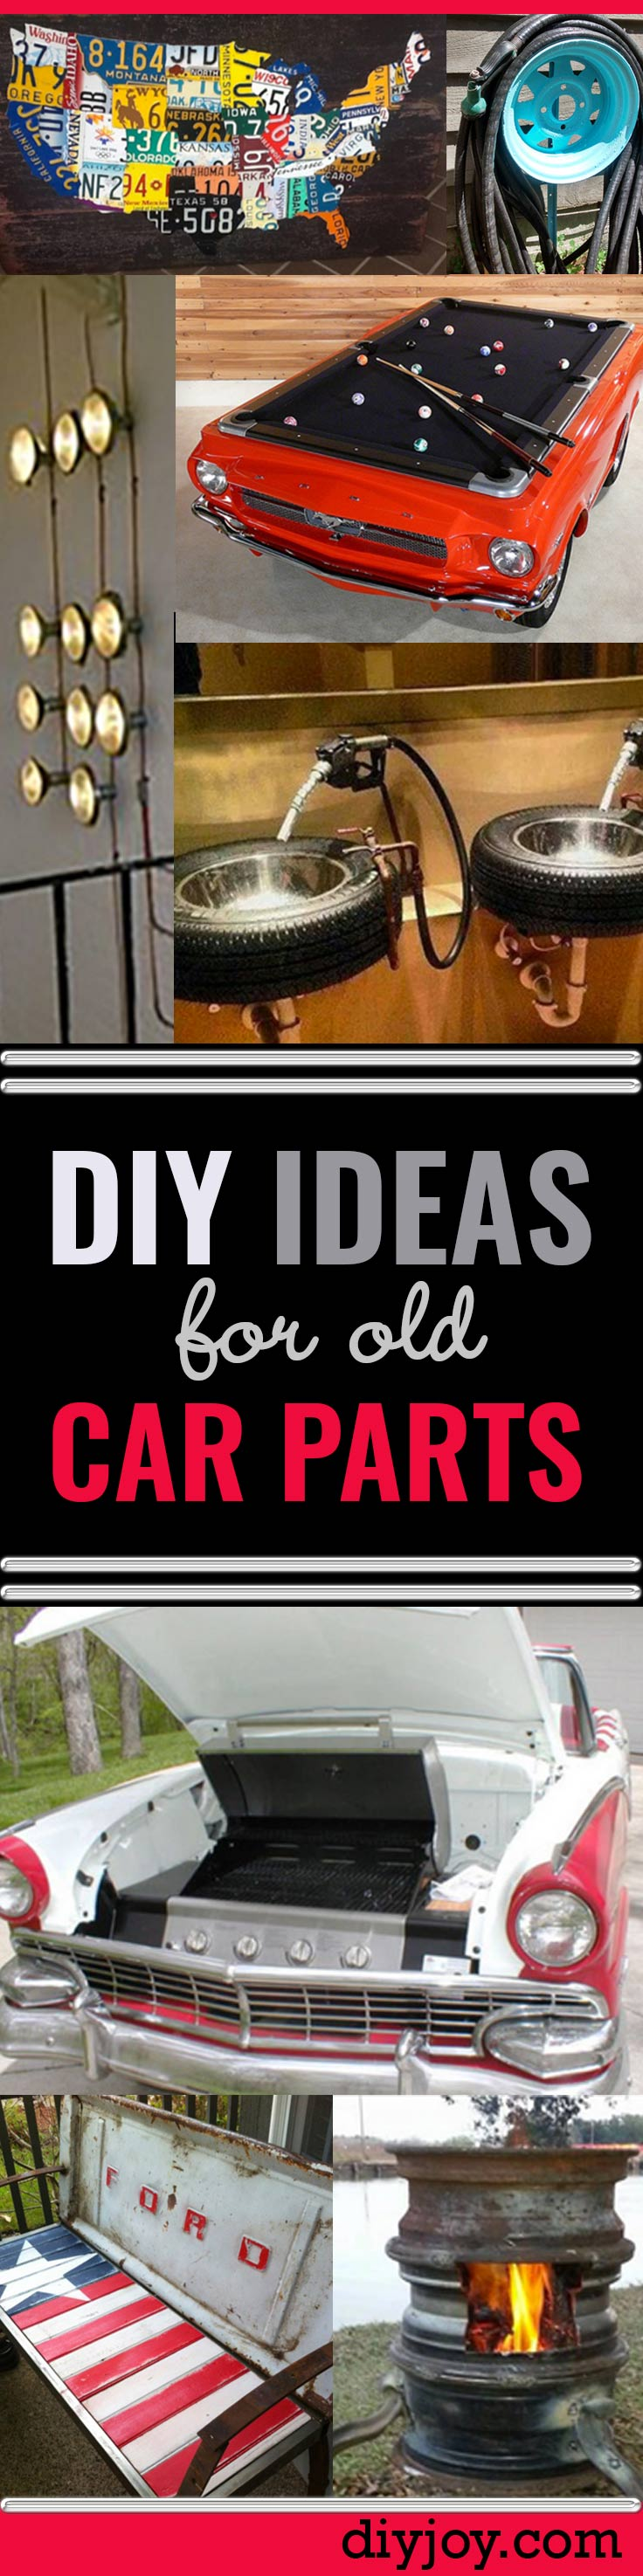 DIY Home Decor, Furniture Projects, Signs and Seating Made From Tires, Bumpers and Old Car Parts -  DIY Ideas Using Old Car Parts - DIY Projects and Fun Crafts for Men (and Women)